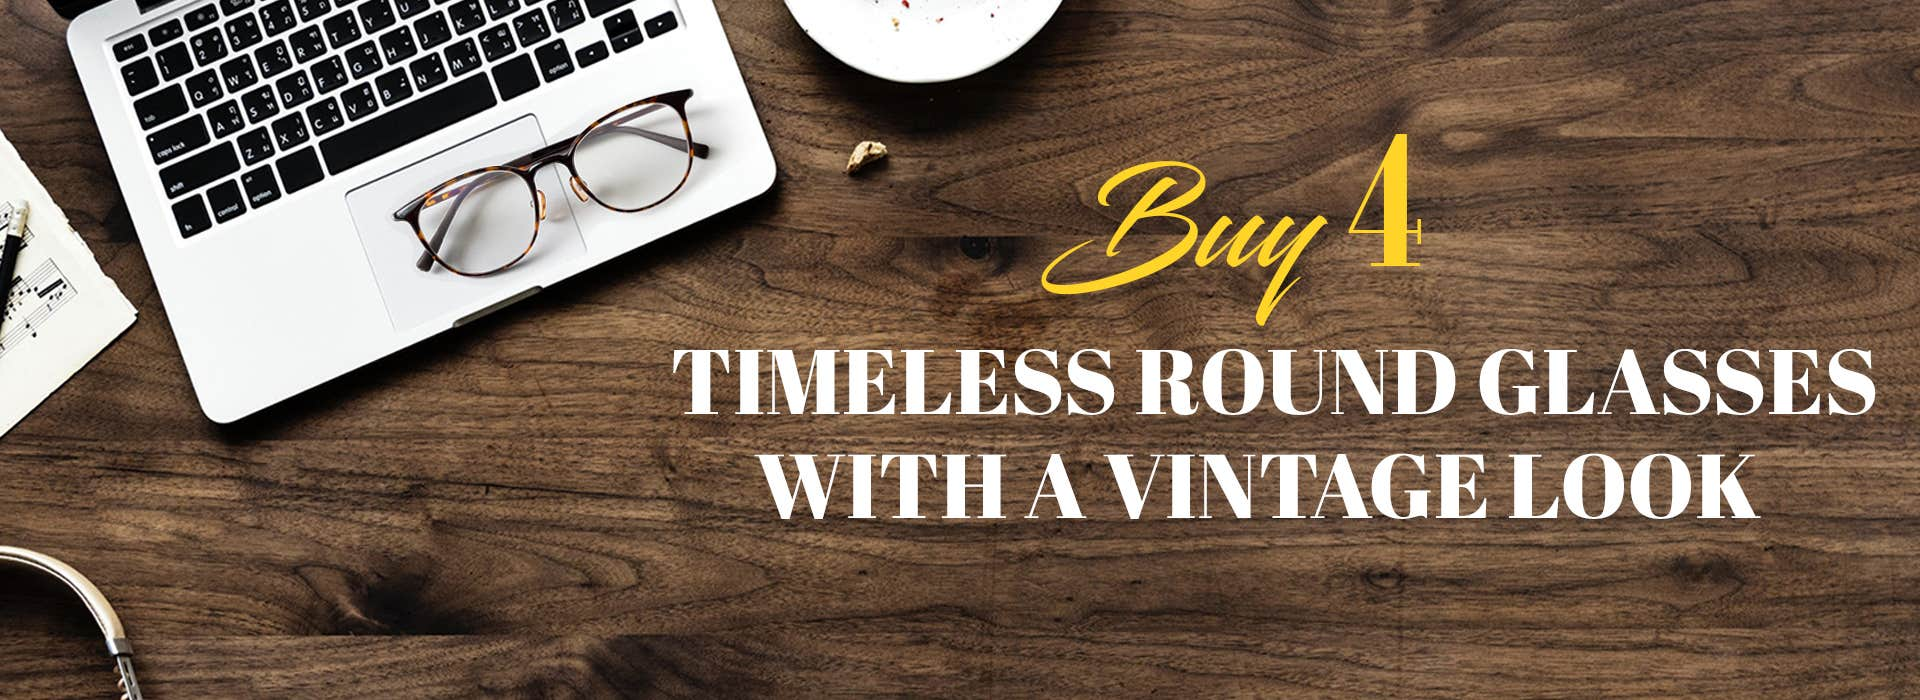 Buy 4 Timeless Round Glasses With A Vintage Look